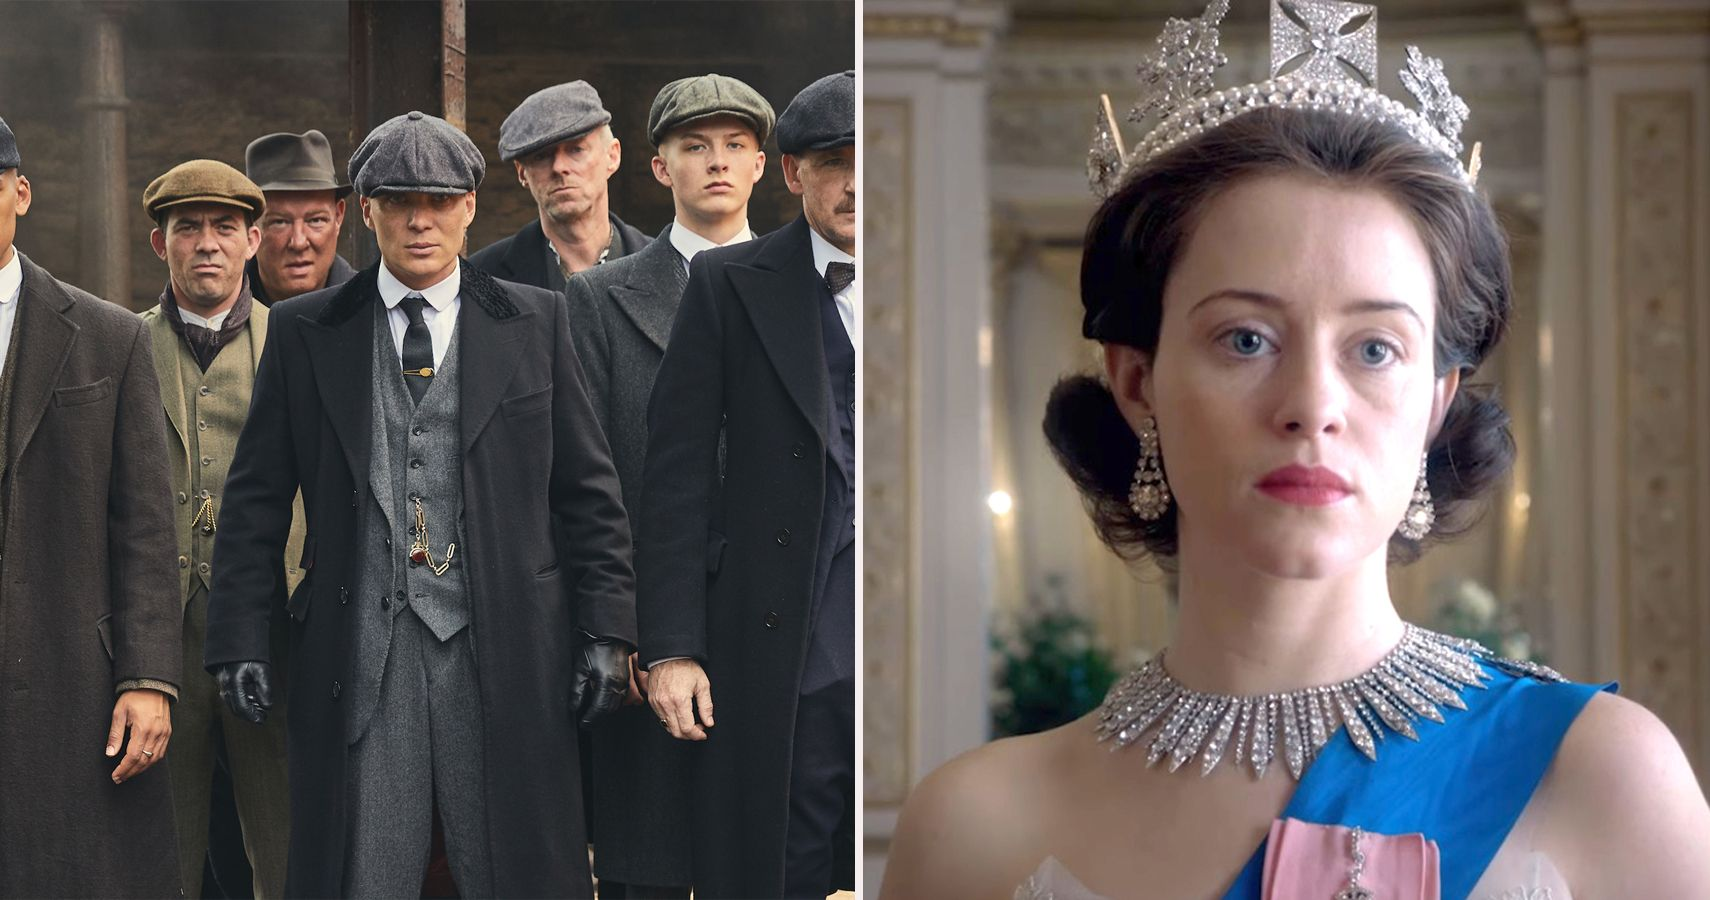 15 Tv Shows You Should Watch If You Loved Downton Abbey